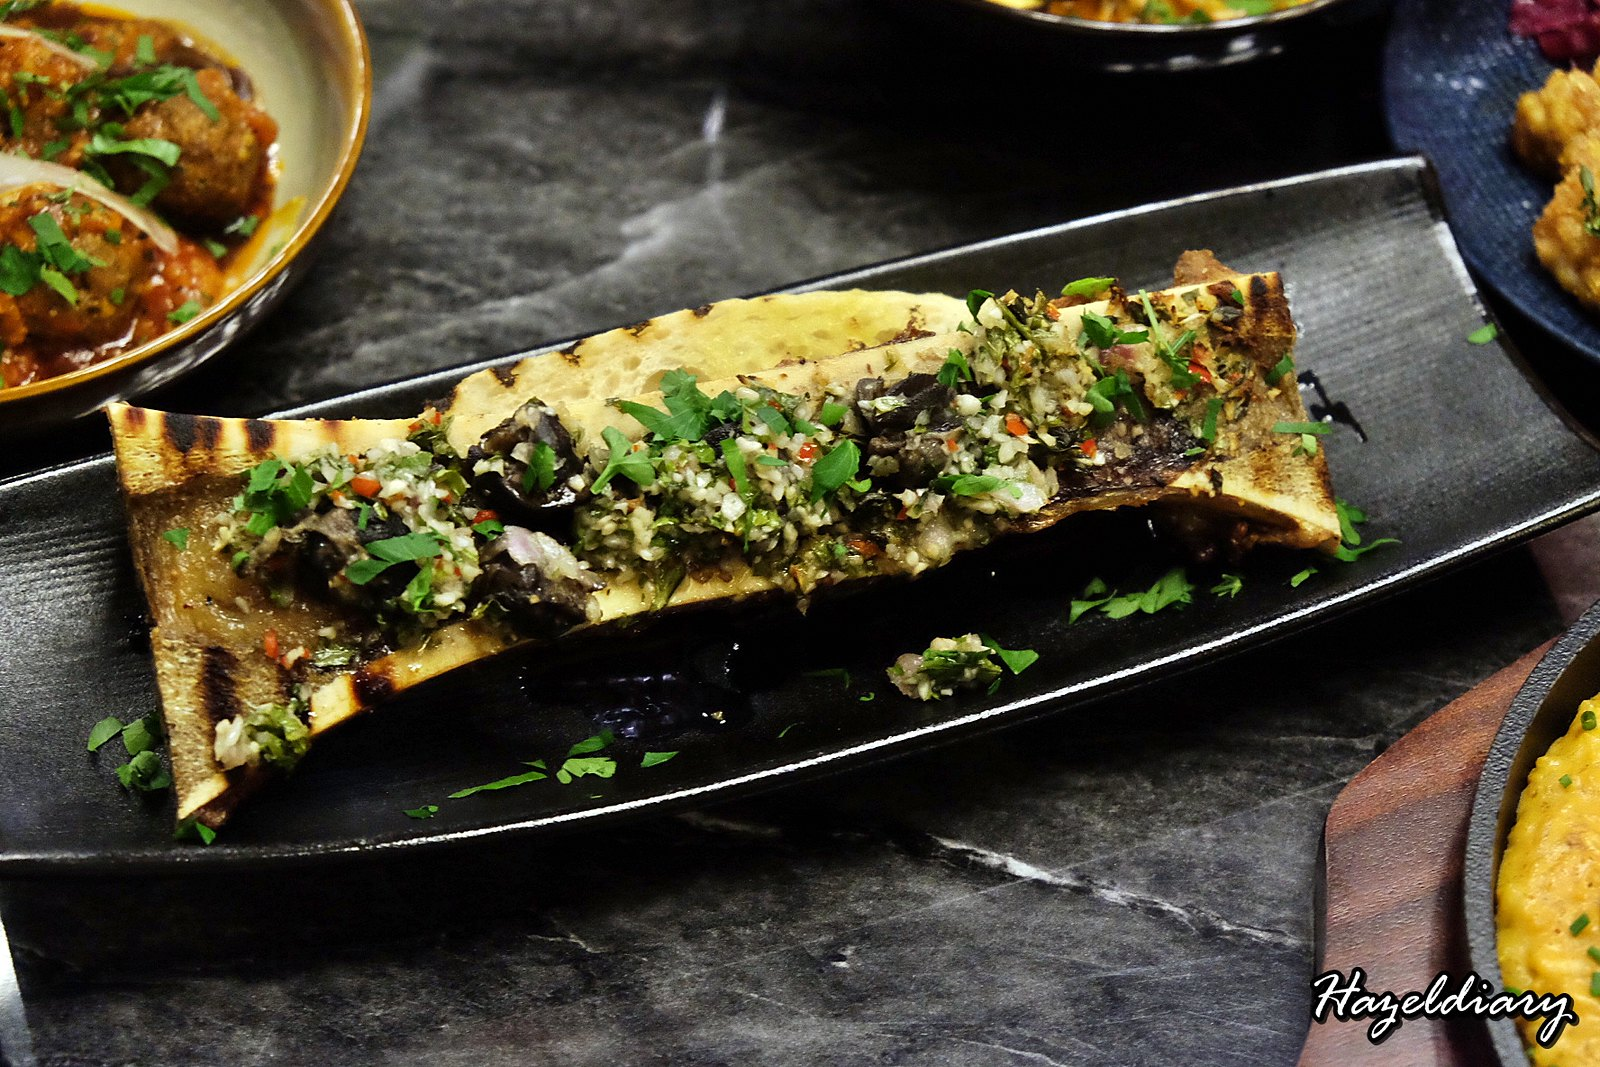 Frapasbar Saveur-Escargot on Bone Marrow